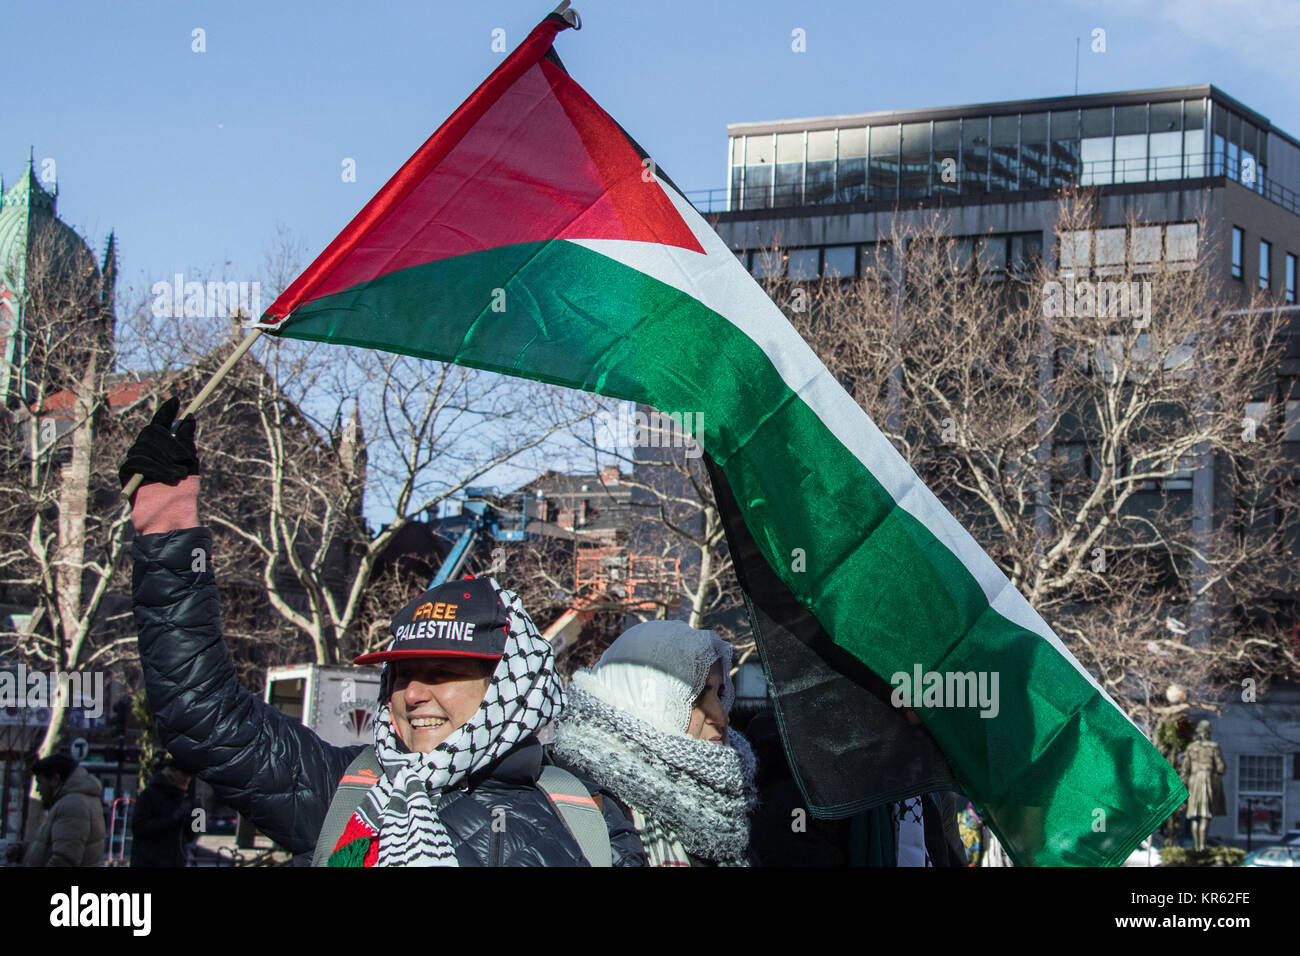 December 17, 2018, Boston (Massachusetts). Peace activists protest against President Trump's recognition of - Stock Image